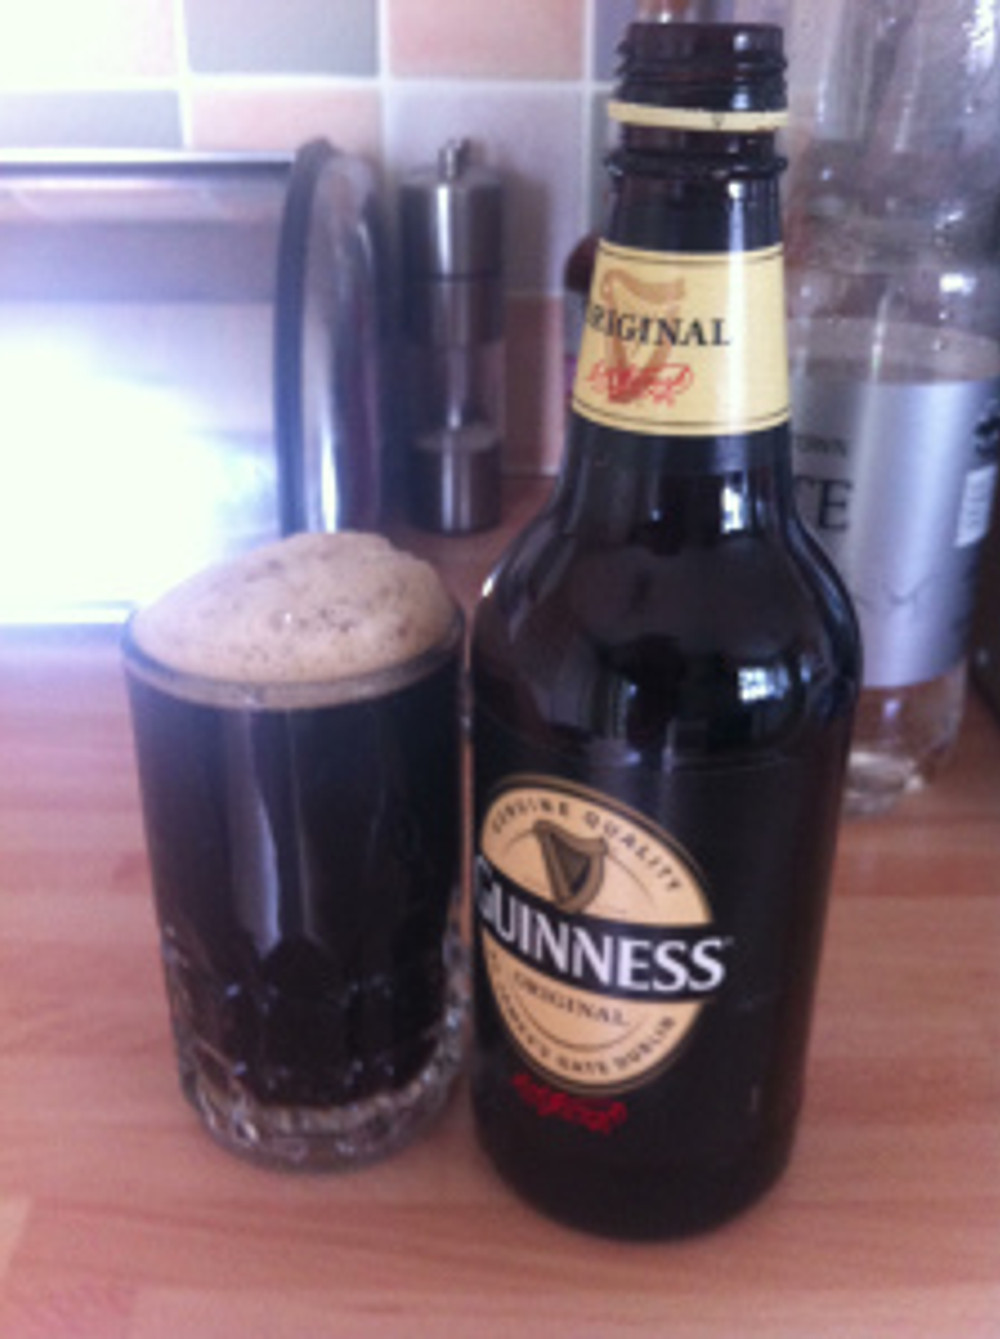 There was enough Guinness left over for my hubby to have half a pint before lunch!